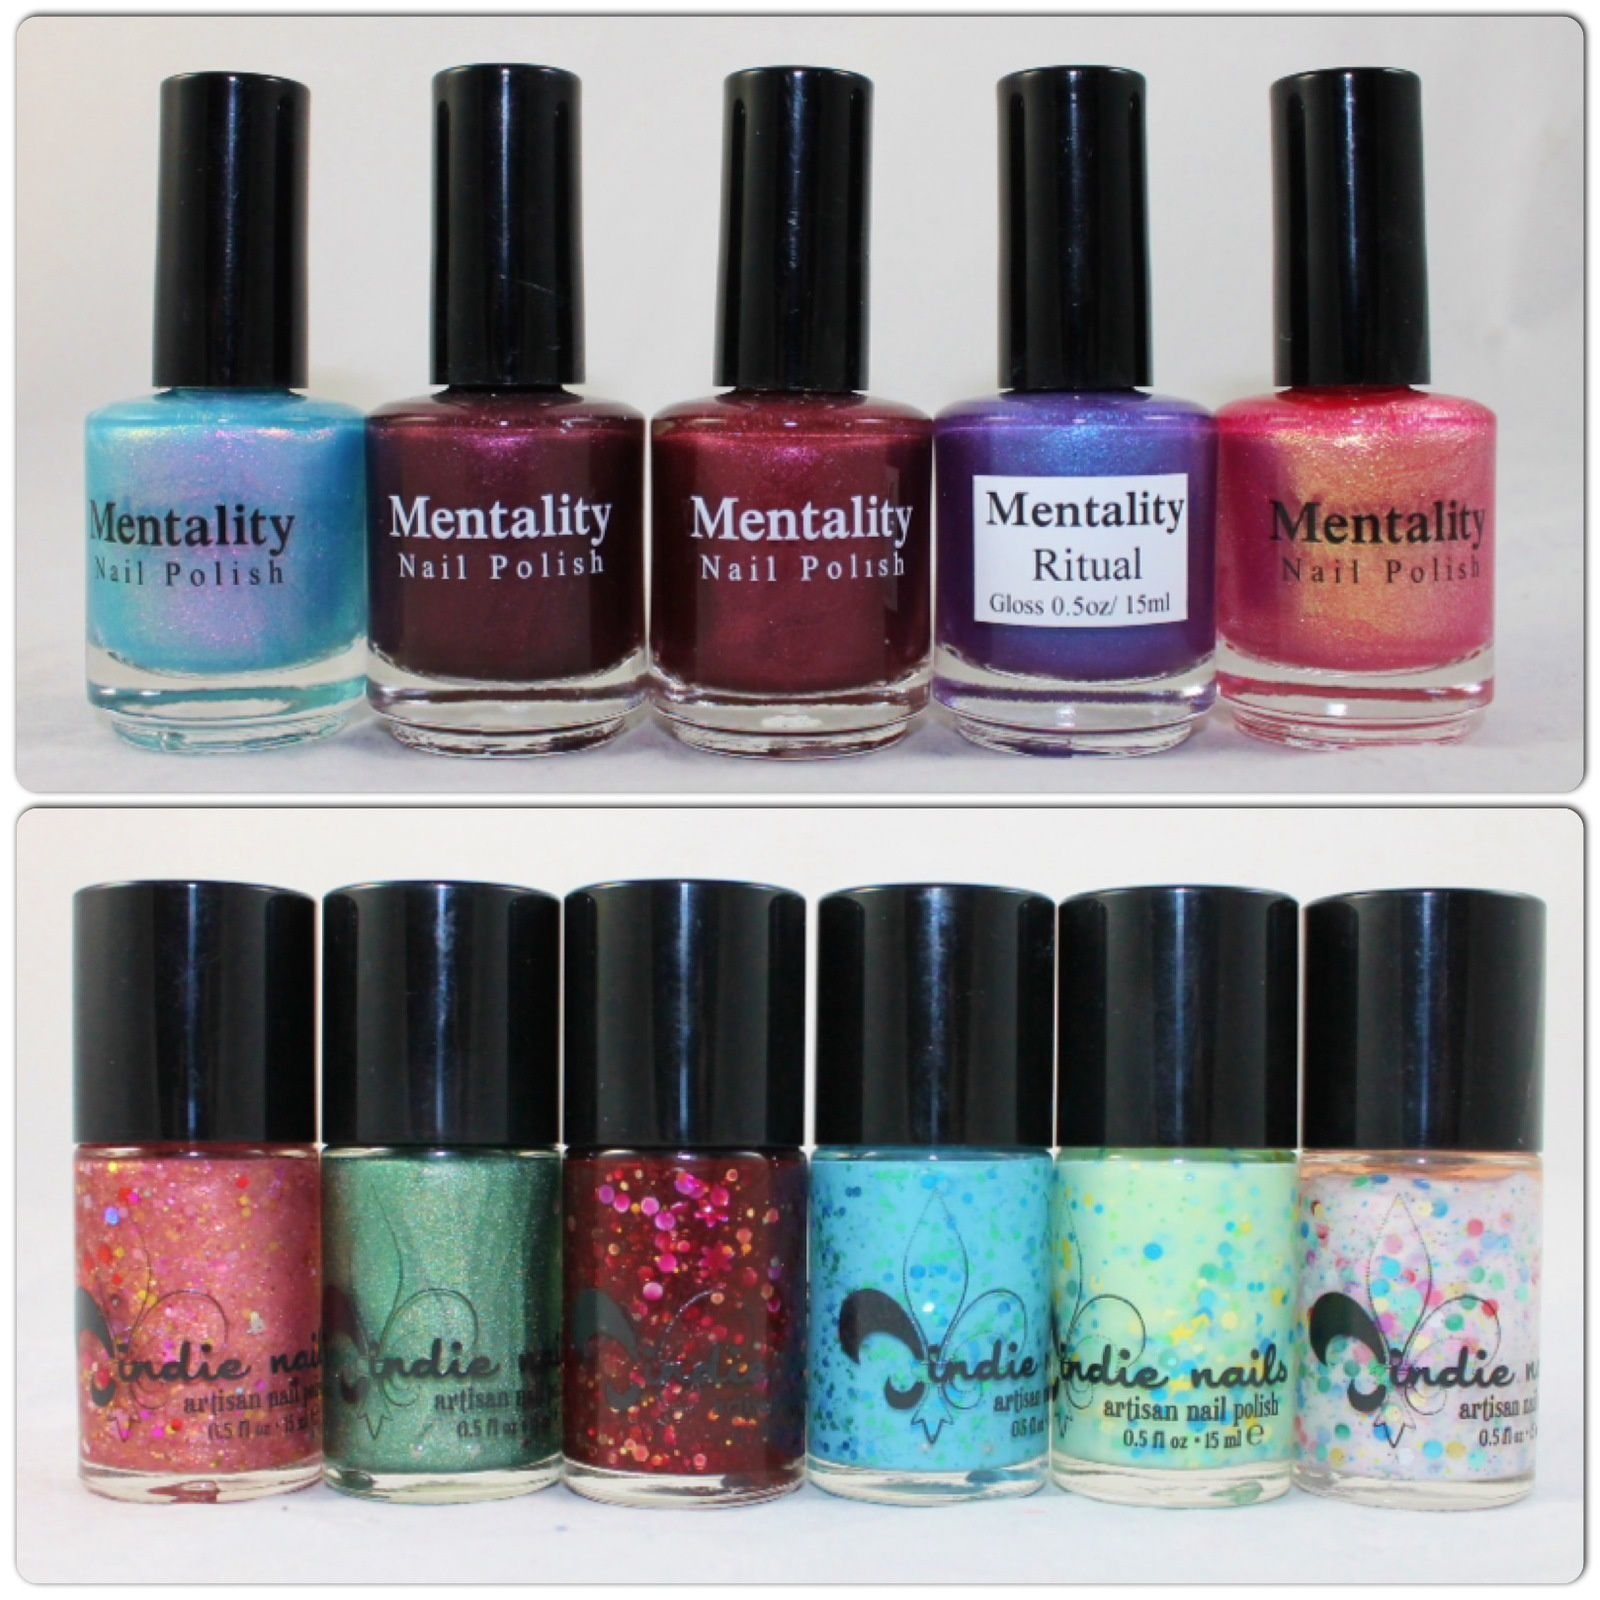 Mentality  Nail Polish Gala, Gorgeous, Allure, Ritual & Spree. Jindie Nails Baby Love My Baby Love, Today is the 1st Day of the Rest of Your Life, Red Velvet Revolver, Honey Blue Blue, Love Yourself & Paper Flowers